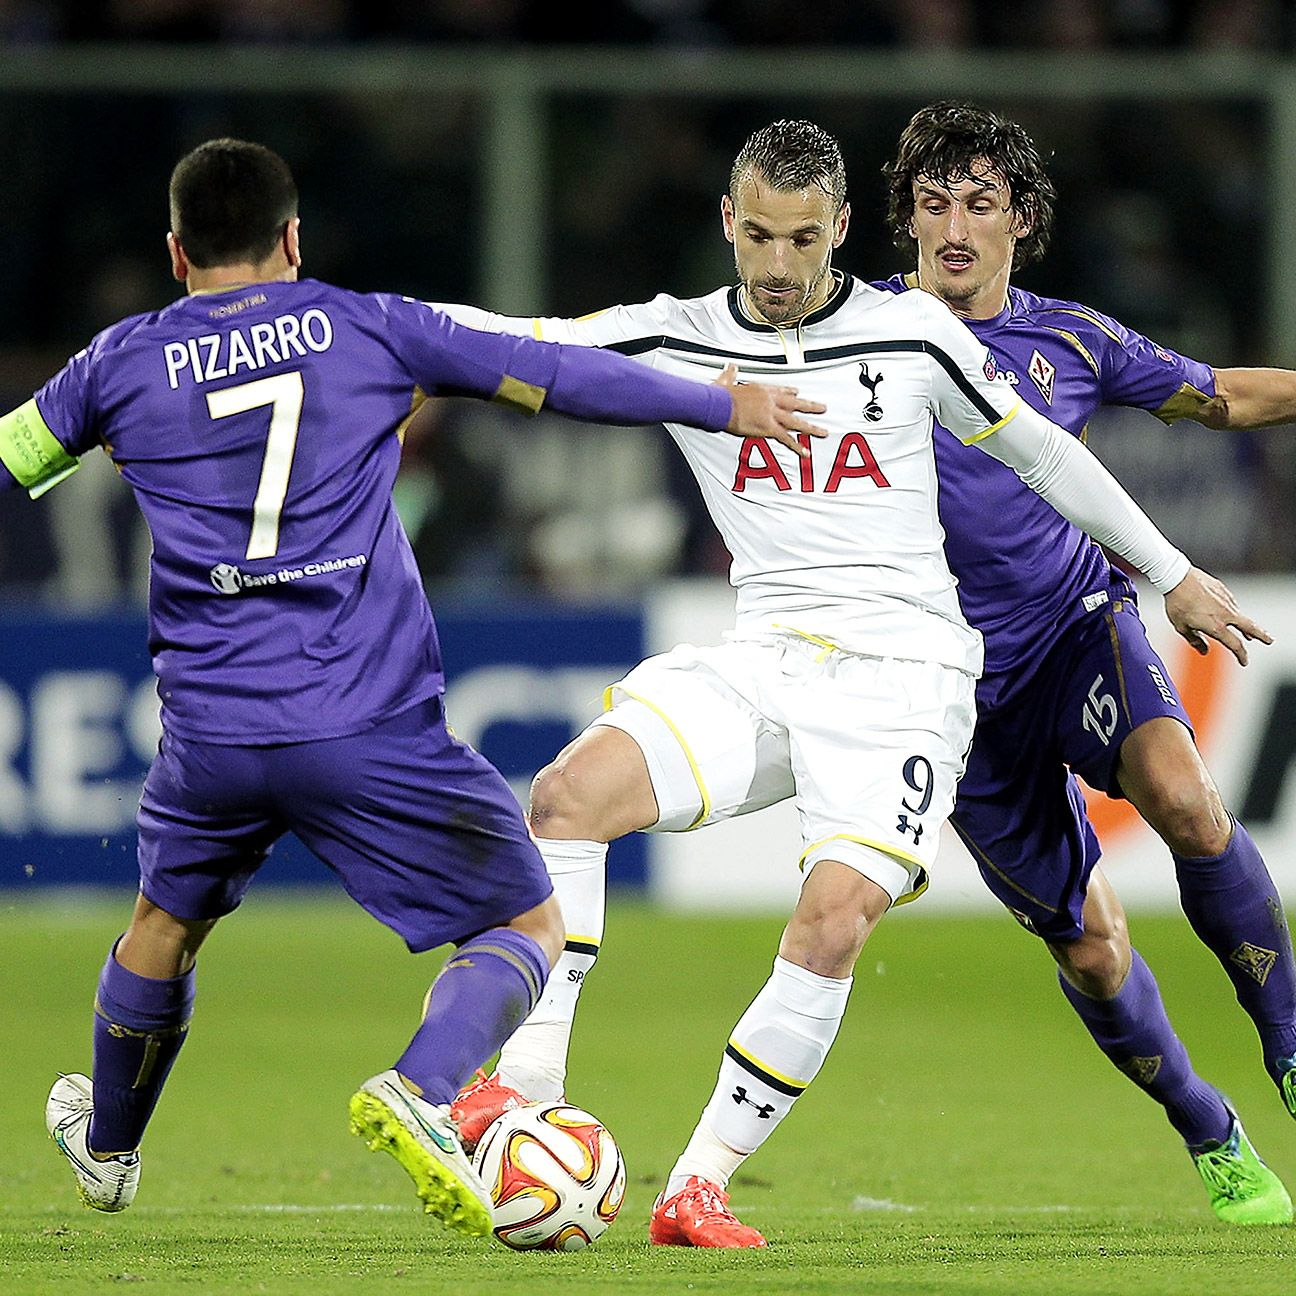 Roberto Soldado endured yet another nightmare miss in the first half versus Fiorentina.